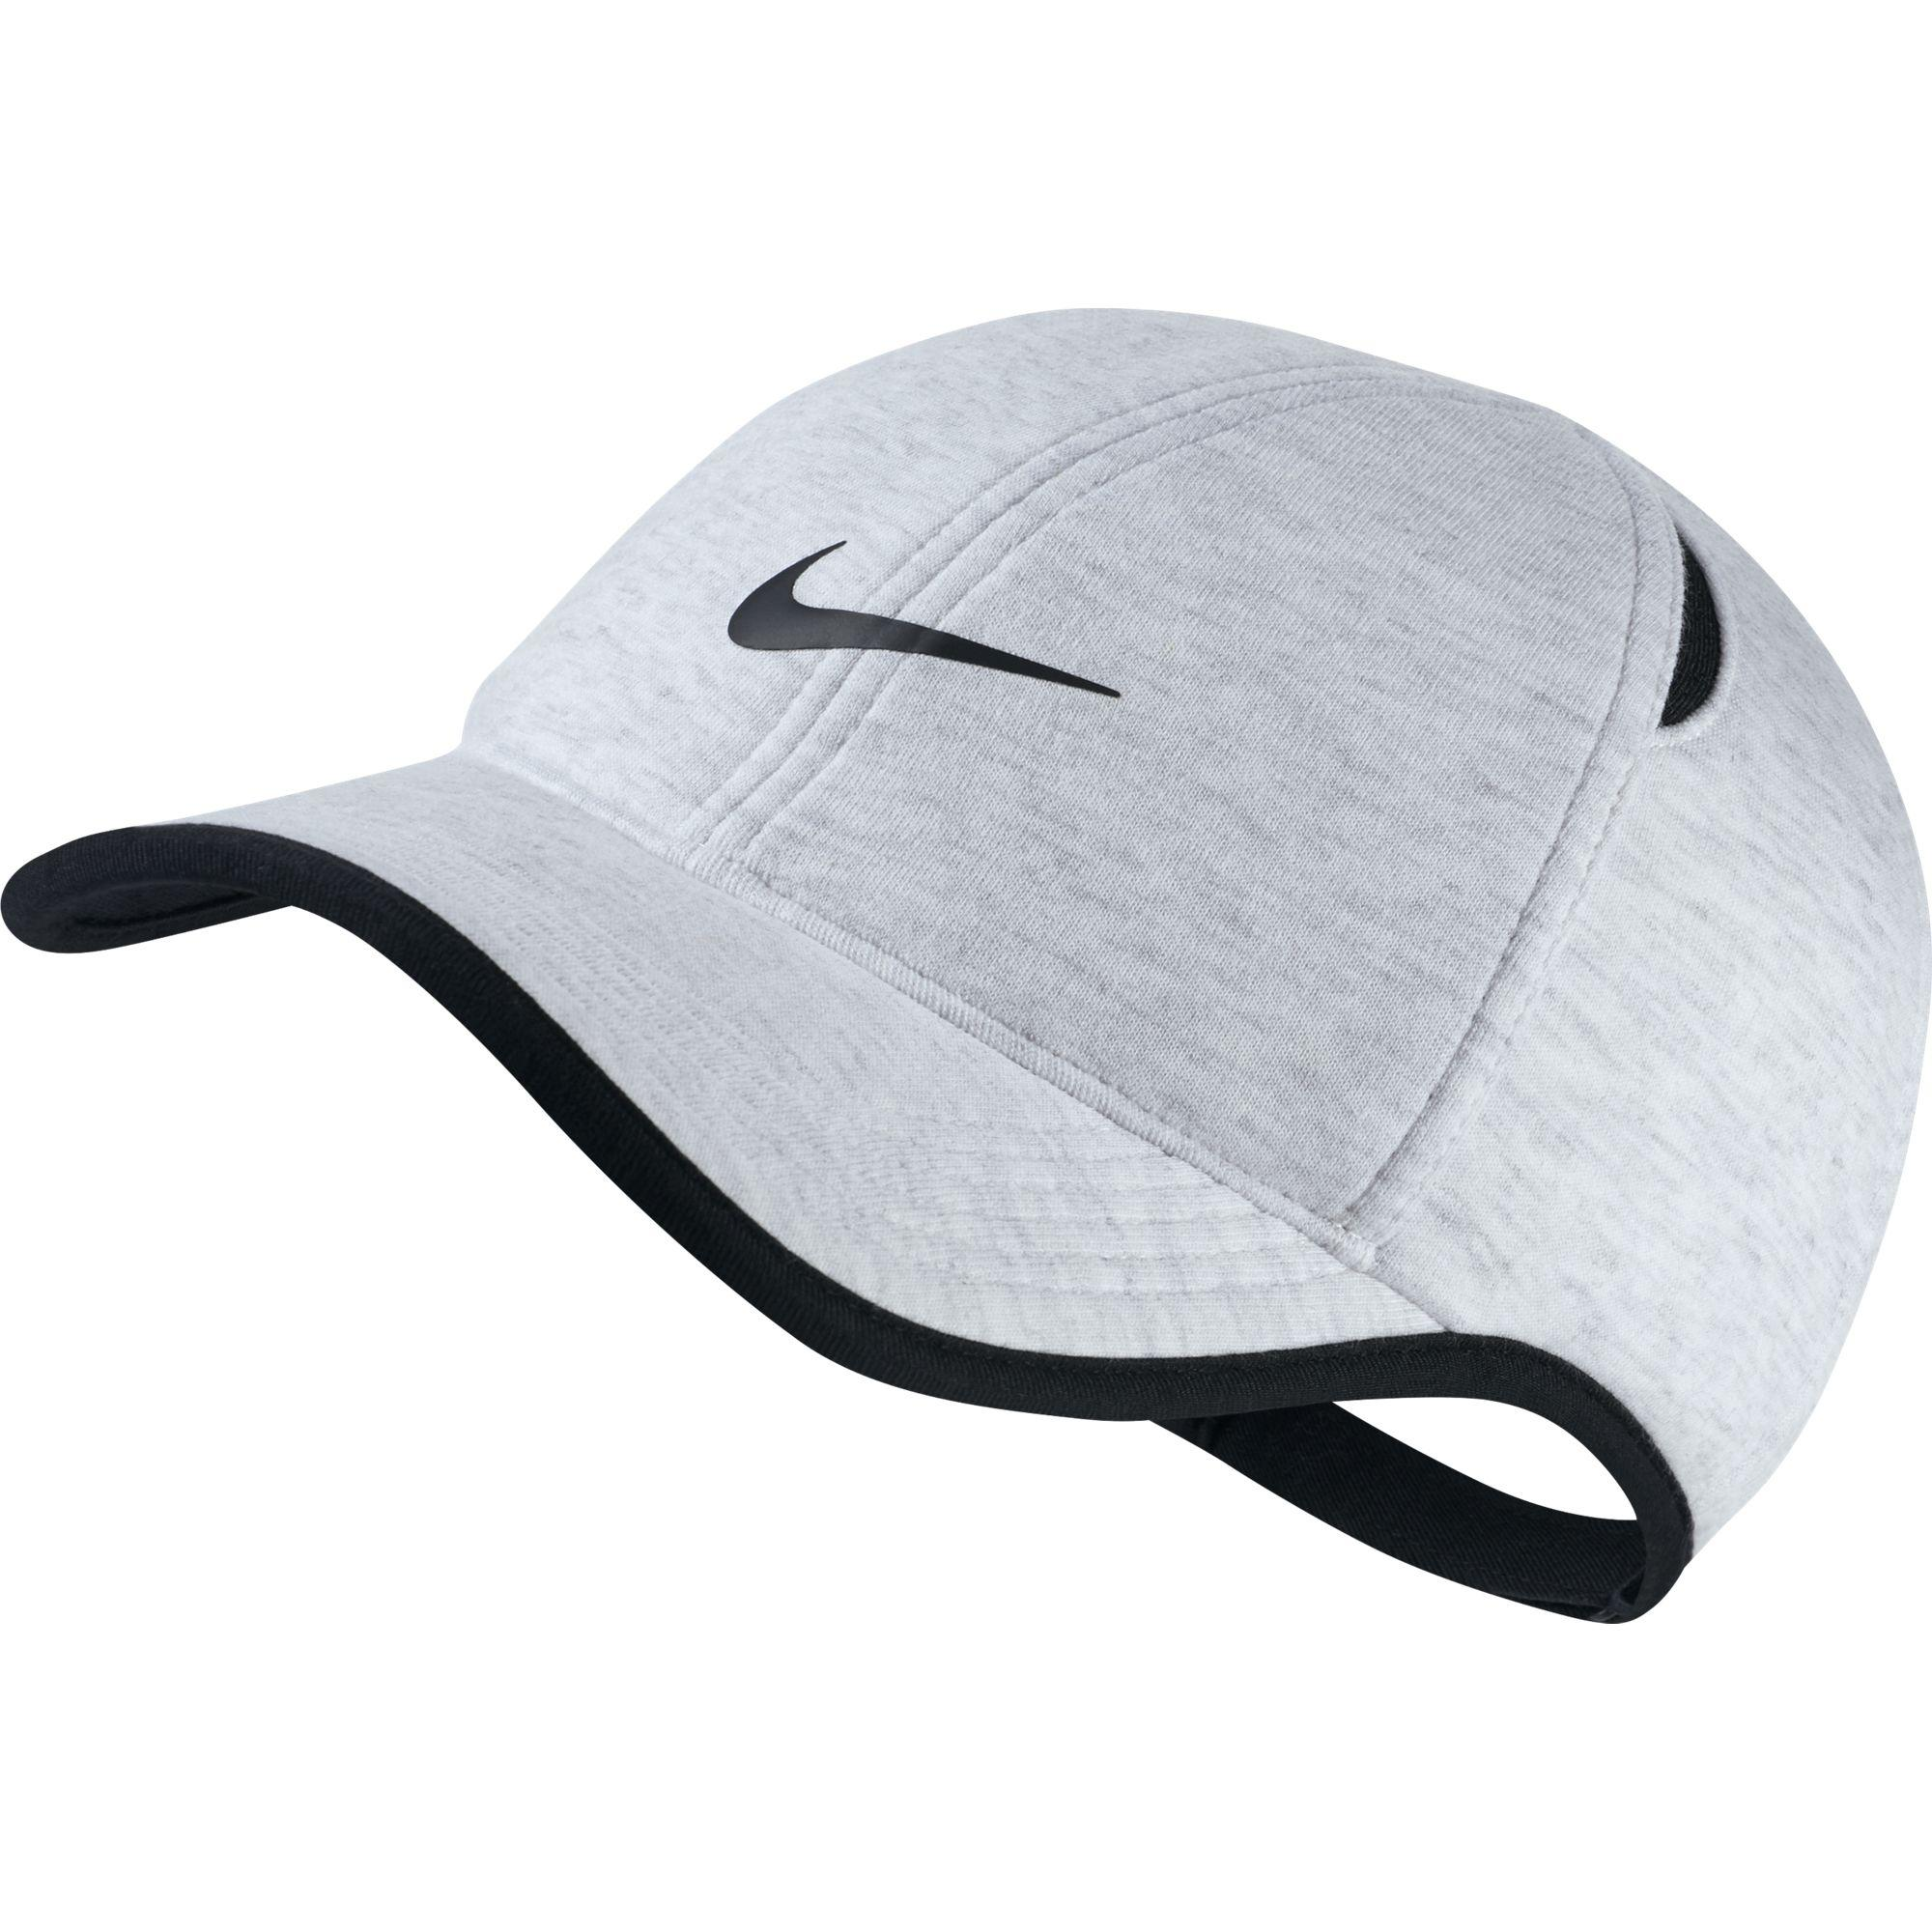 3ed7e222323 Nike AeroBill Featherlight Adjustable Cap - Birch Heather - Tennisnuts.com